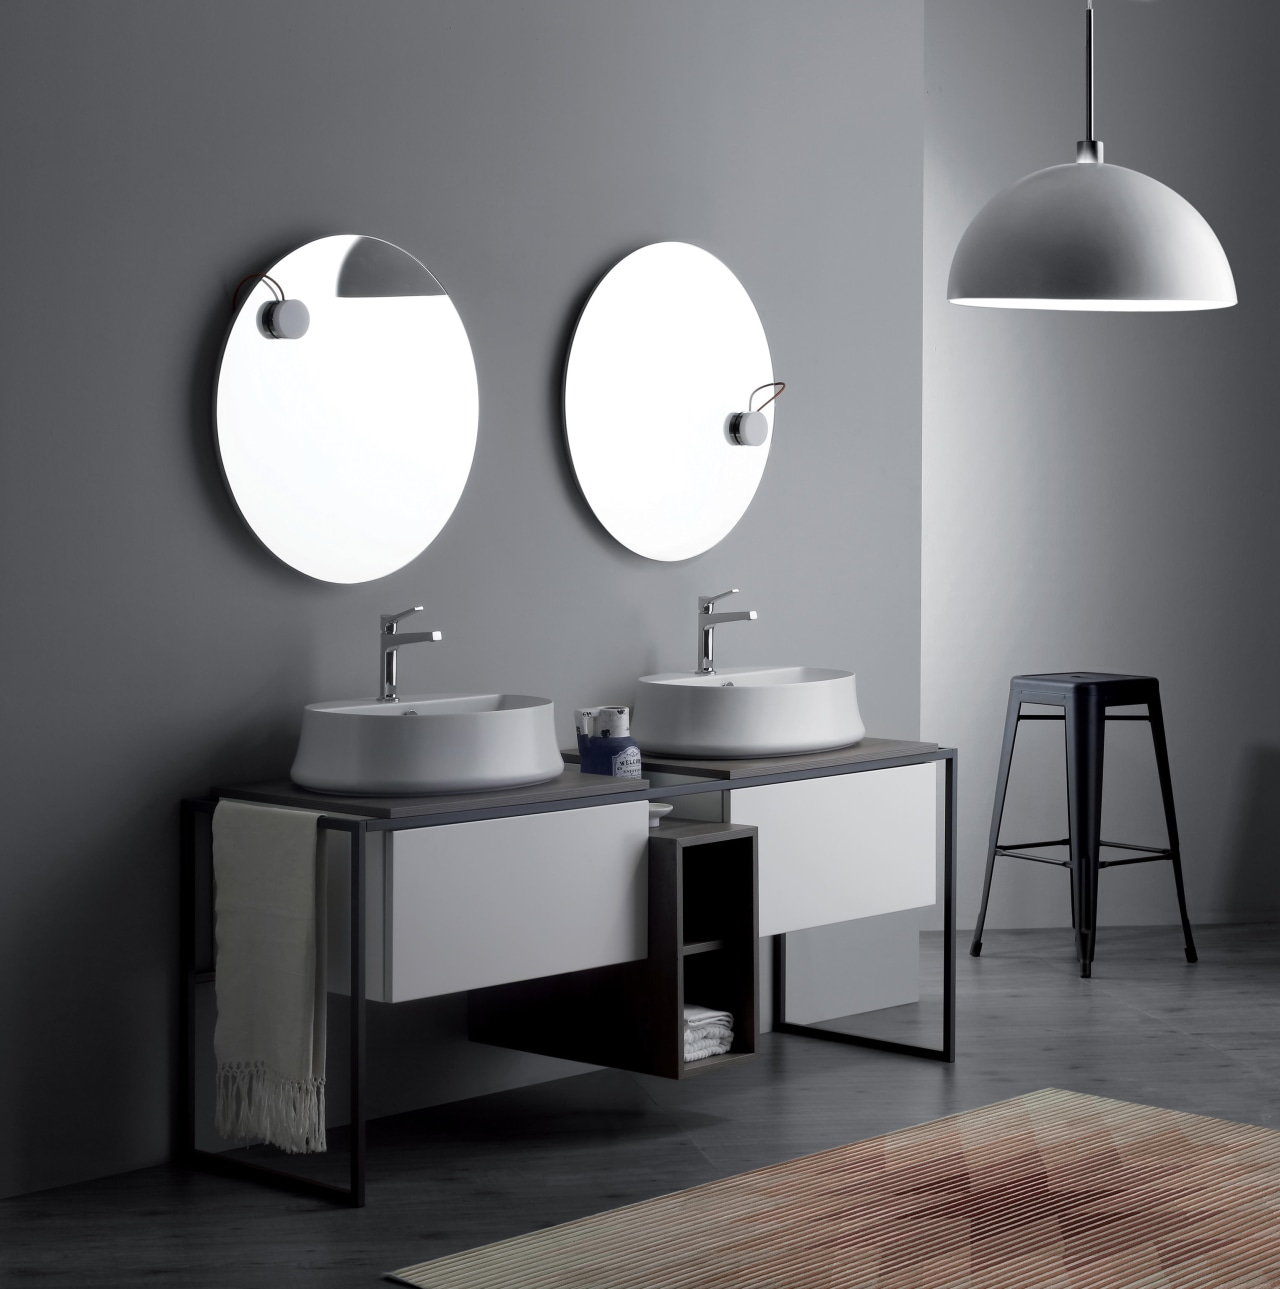 The Sharp basin range suits a wide range bathroom, bathroom accessory, bathroom cabinet, bathroom sink, black and white, furniture, interior design, light fixture, monochrome, plumbing fixture, product design, sink, still life photography, table, tap, gray, black